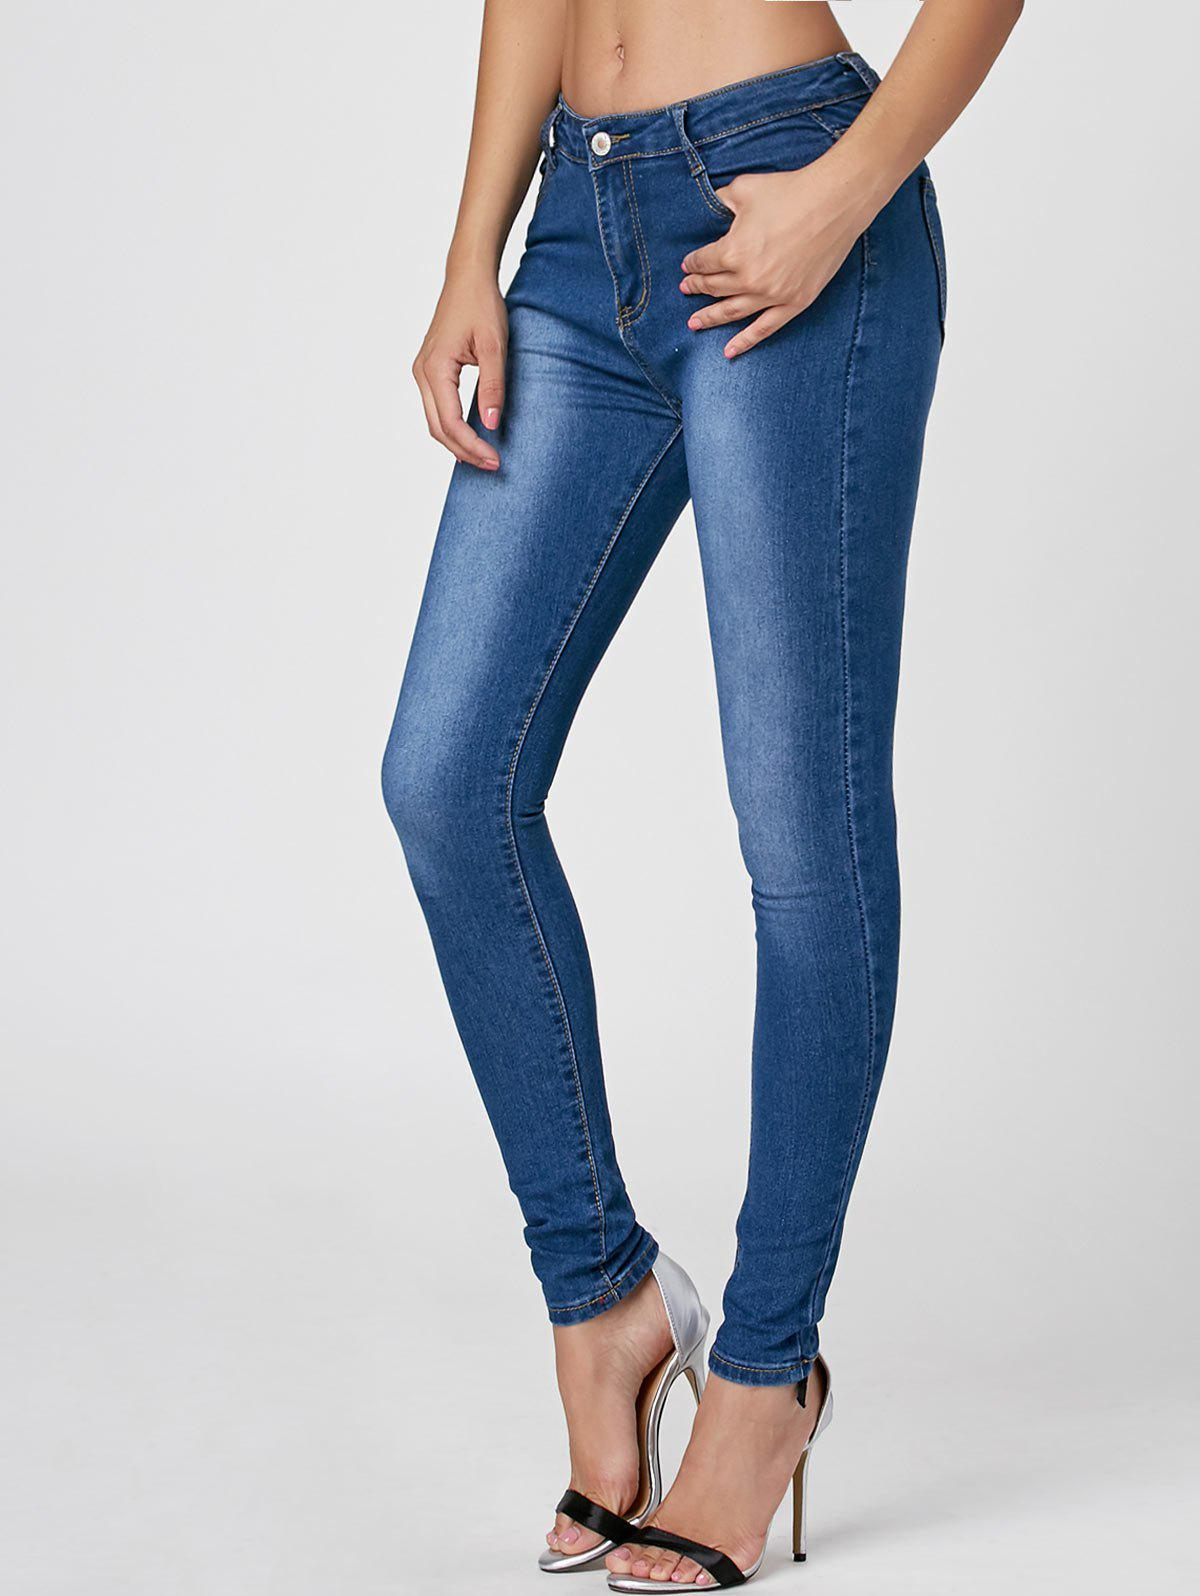 Dark Washed High Waist Skinny JeansWOMEN<br><br>Size: L; Color: CERULEAN; Material: Cotton; Length: Normal; Fabric Type: Denim; Wash: Dark; Fit Type: Skinny; Waist Type: High; Elasticity: Elastic; Weight: 0.4500kg; Package Contents: 1 x Jeans;